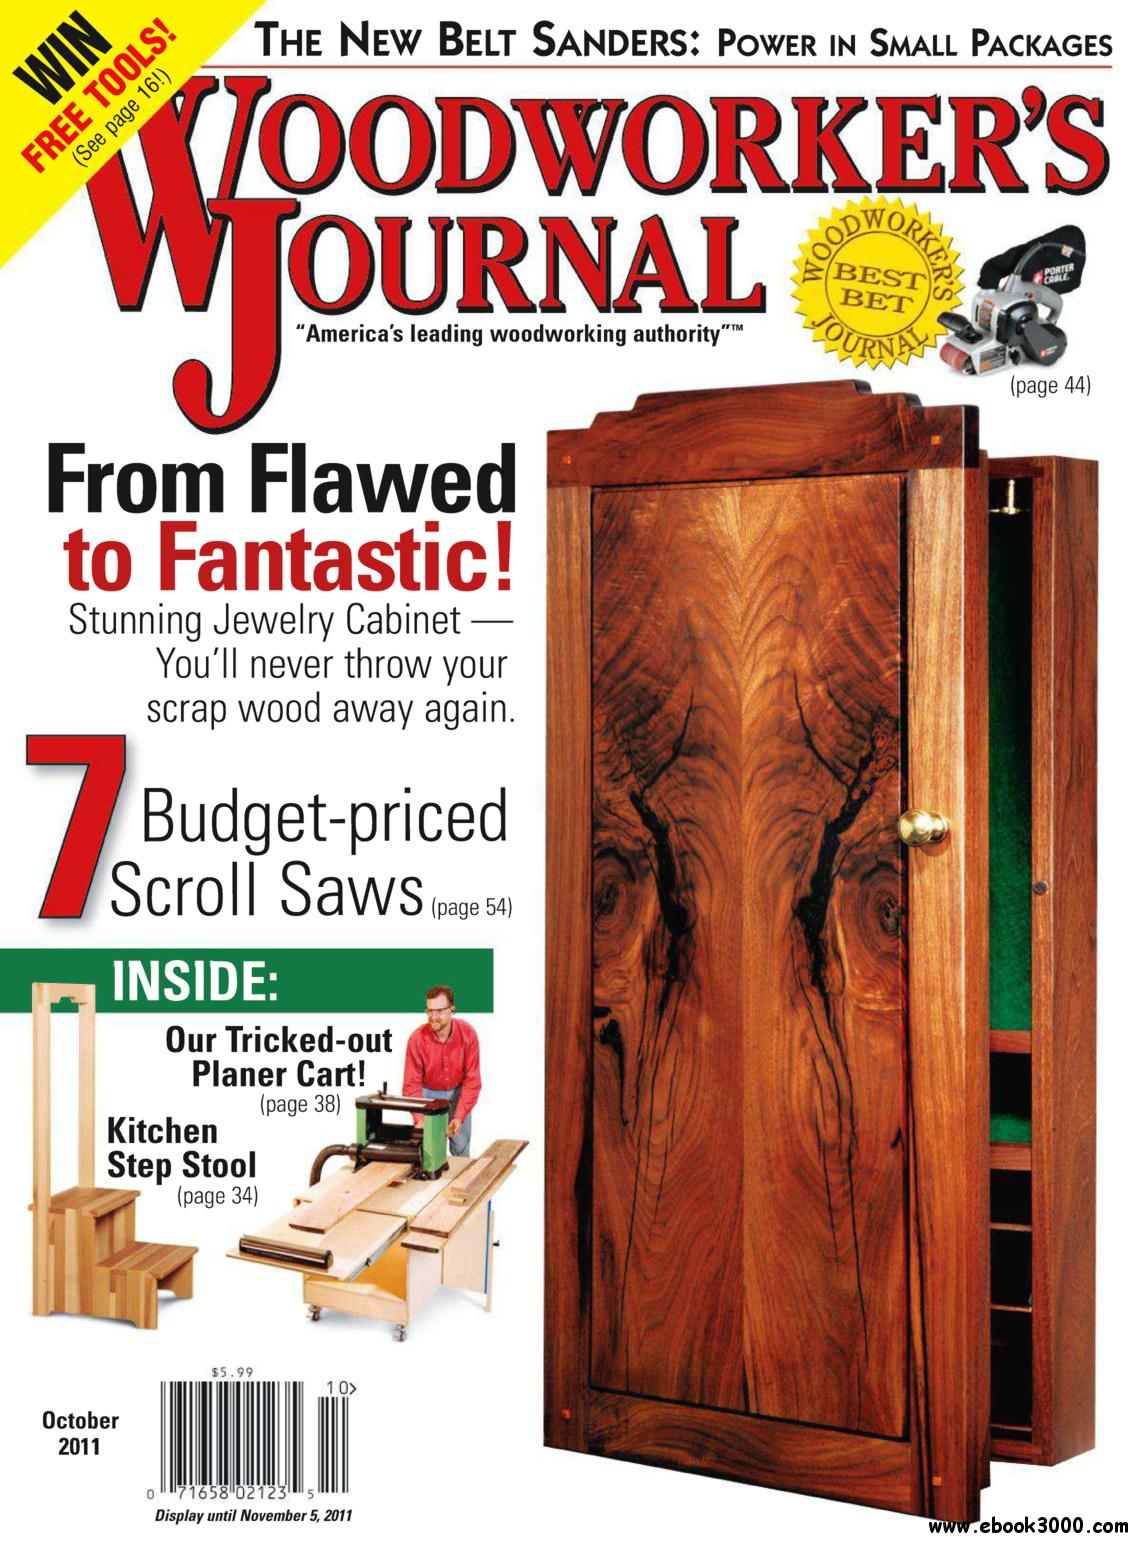 Woodworker's Journal (October 2011) free download